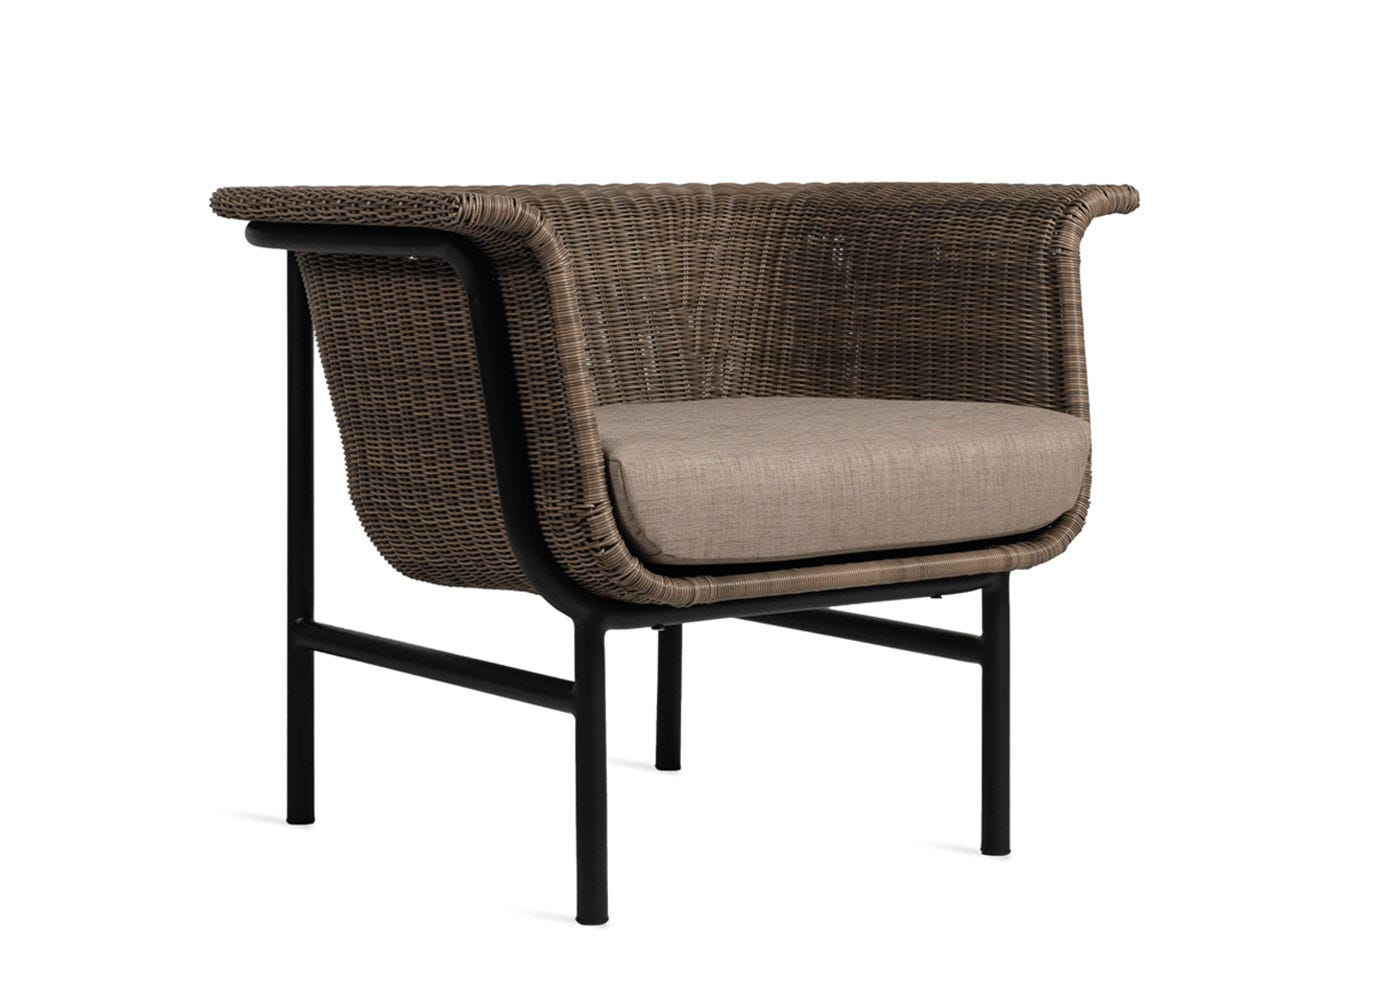 Wicked lounge chair taupe material - Side profile.